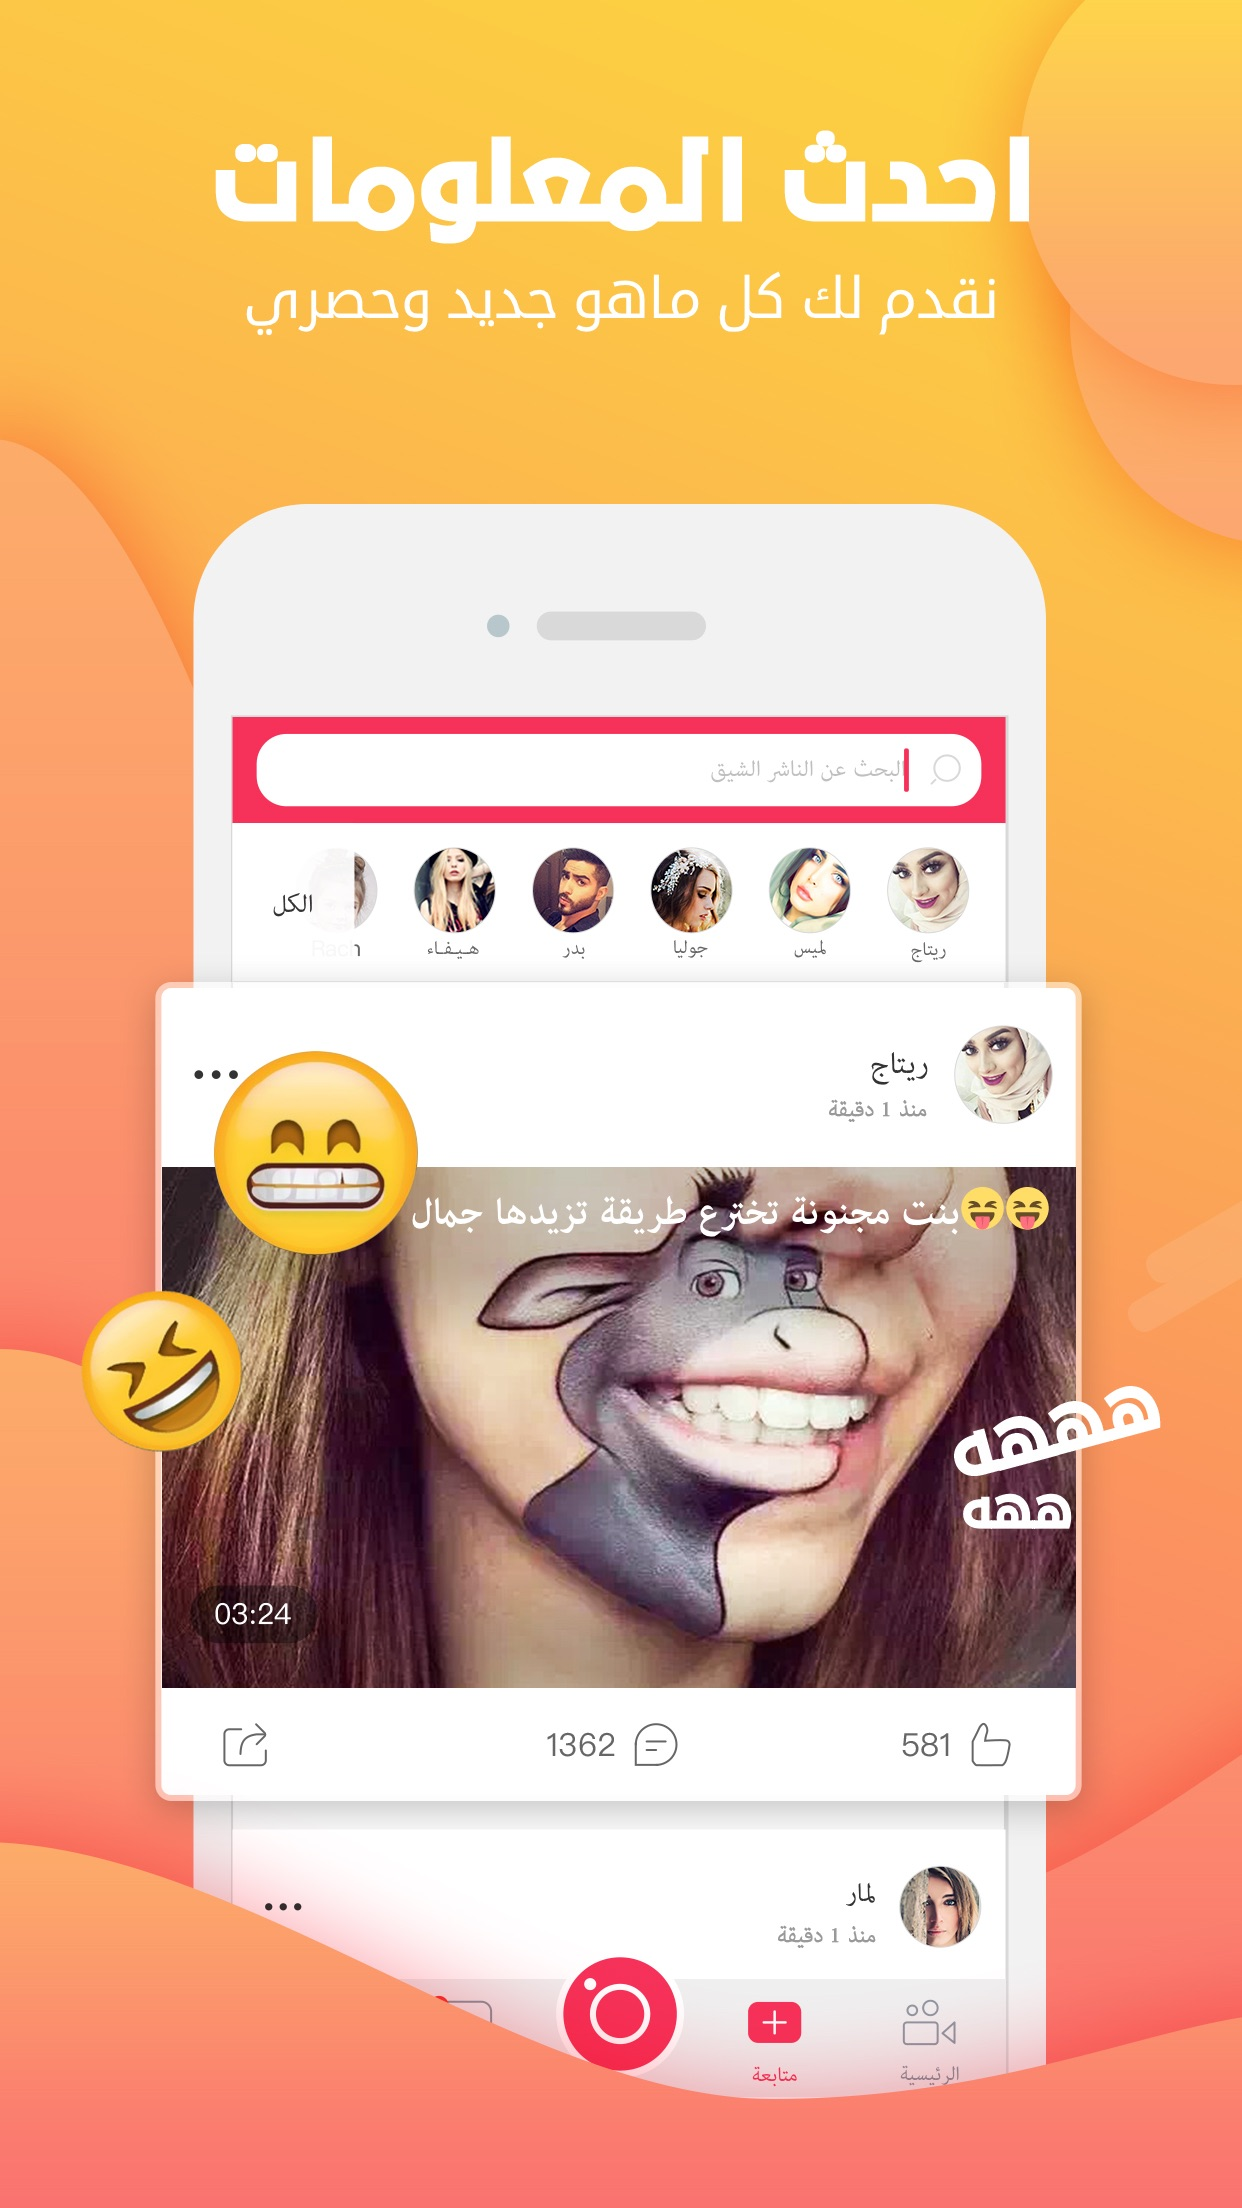 فله - وسع صدرك وفلها Screenshot